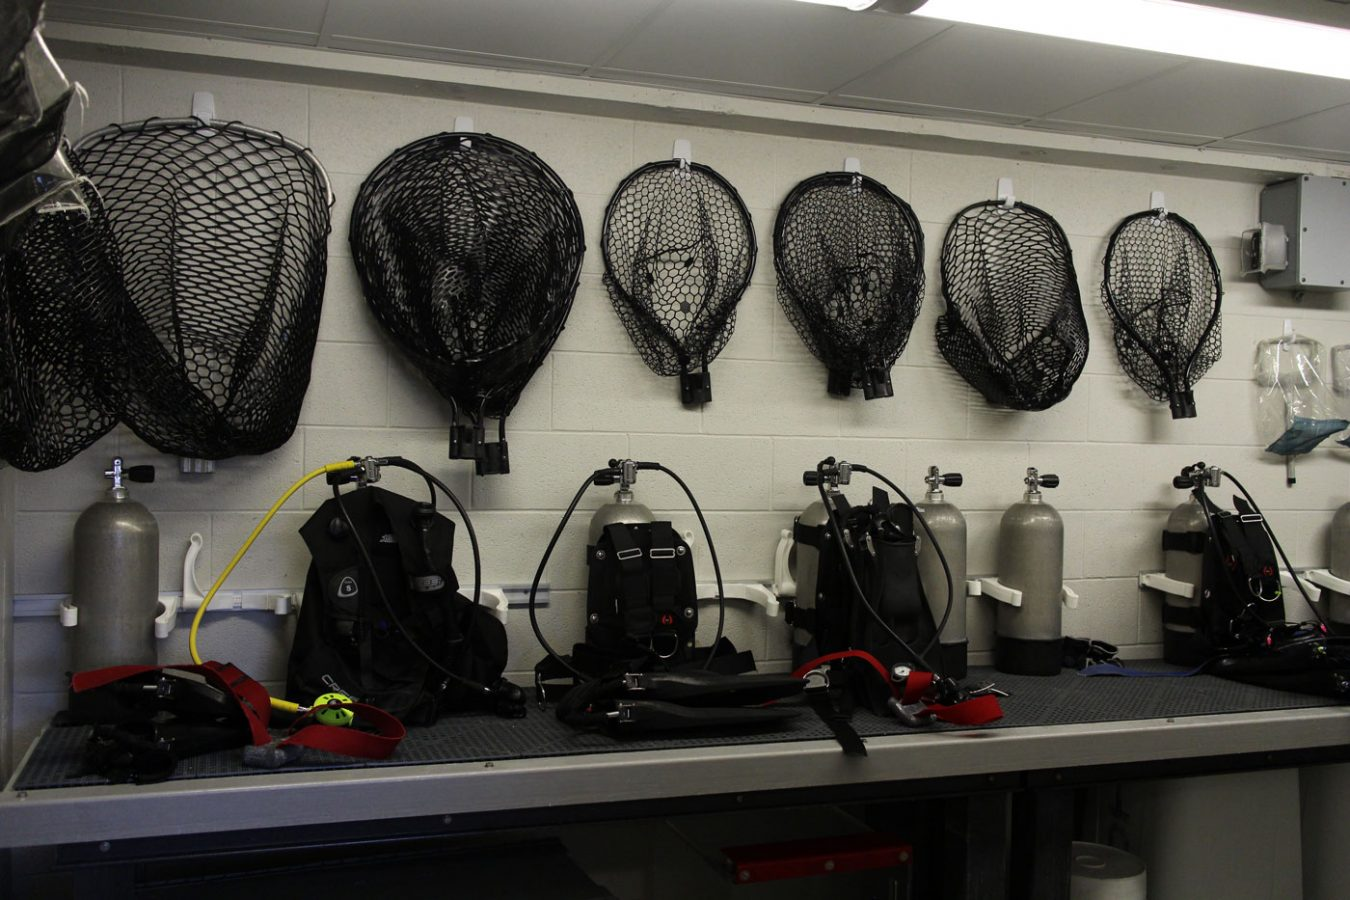 nets and diver gear in divers' splash room